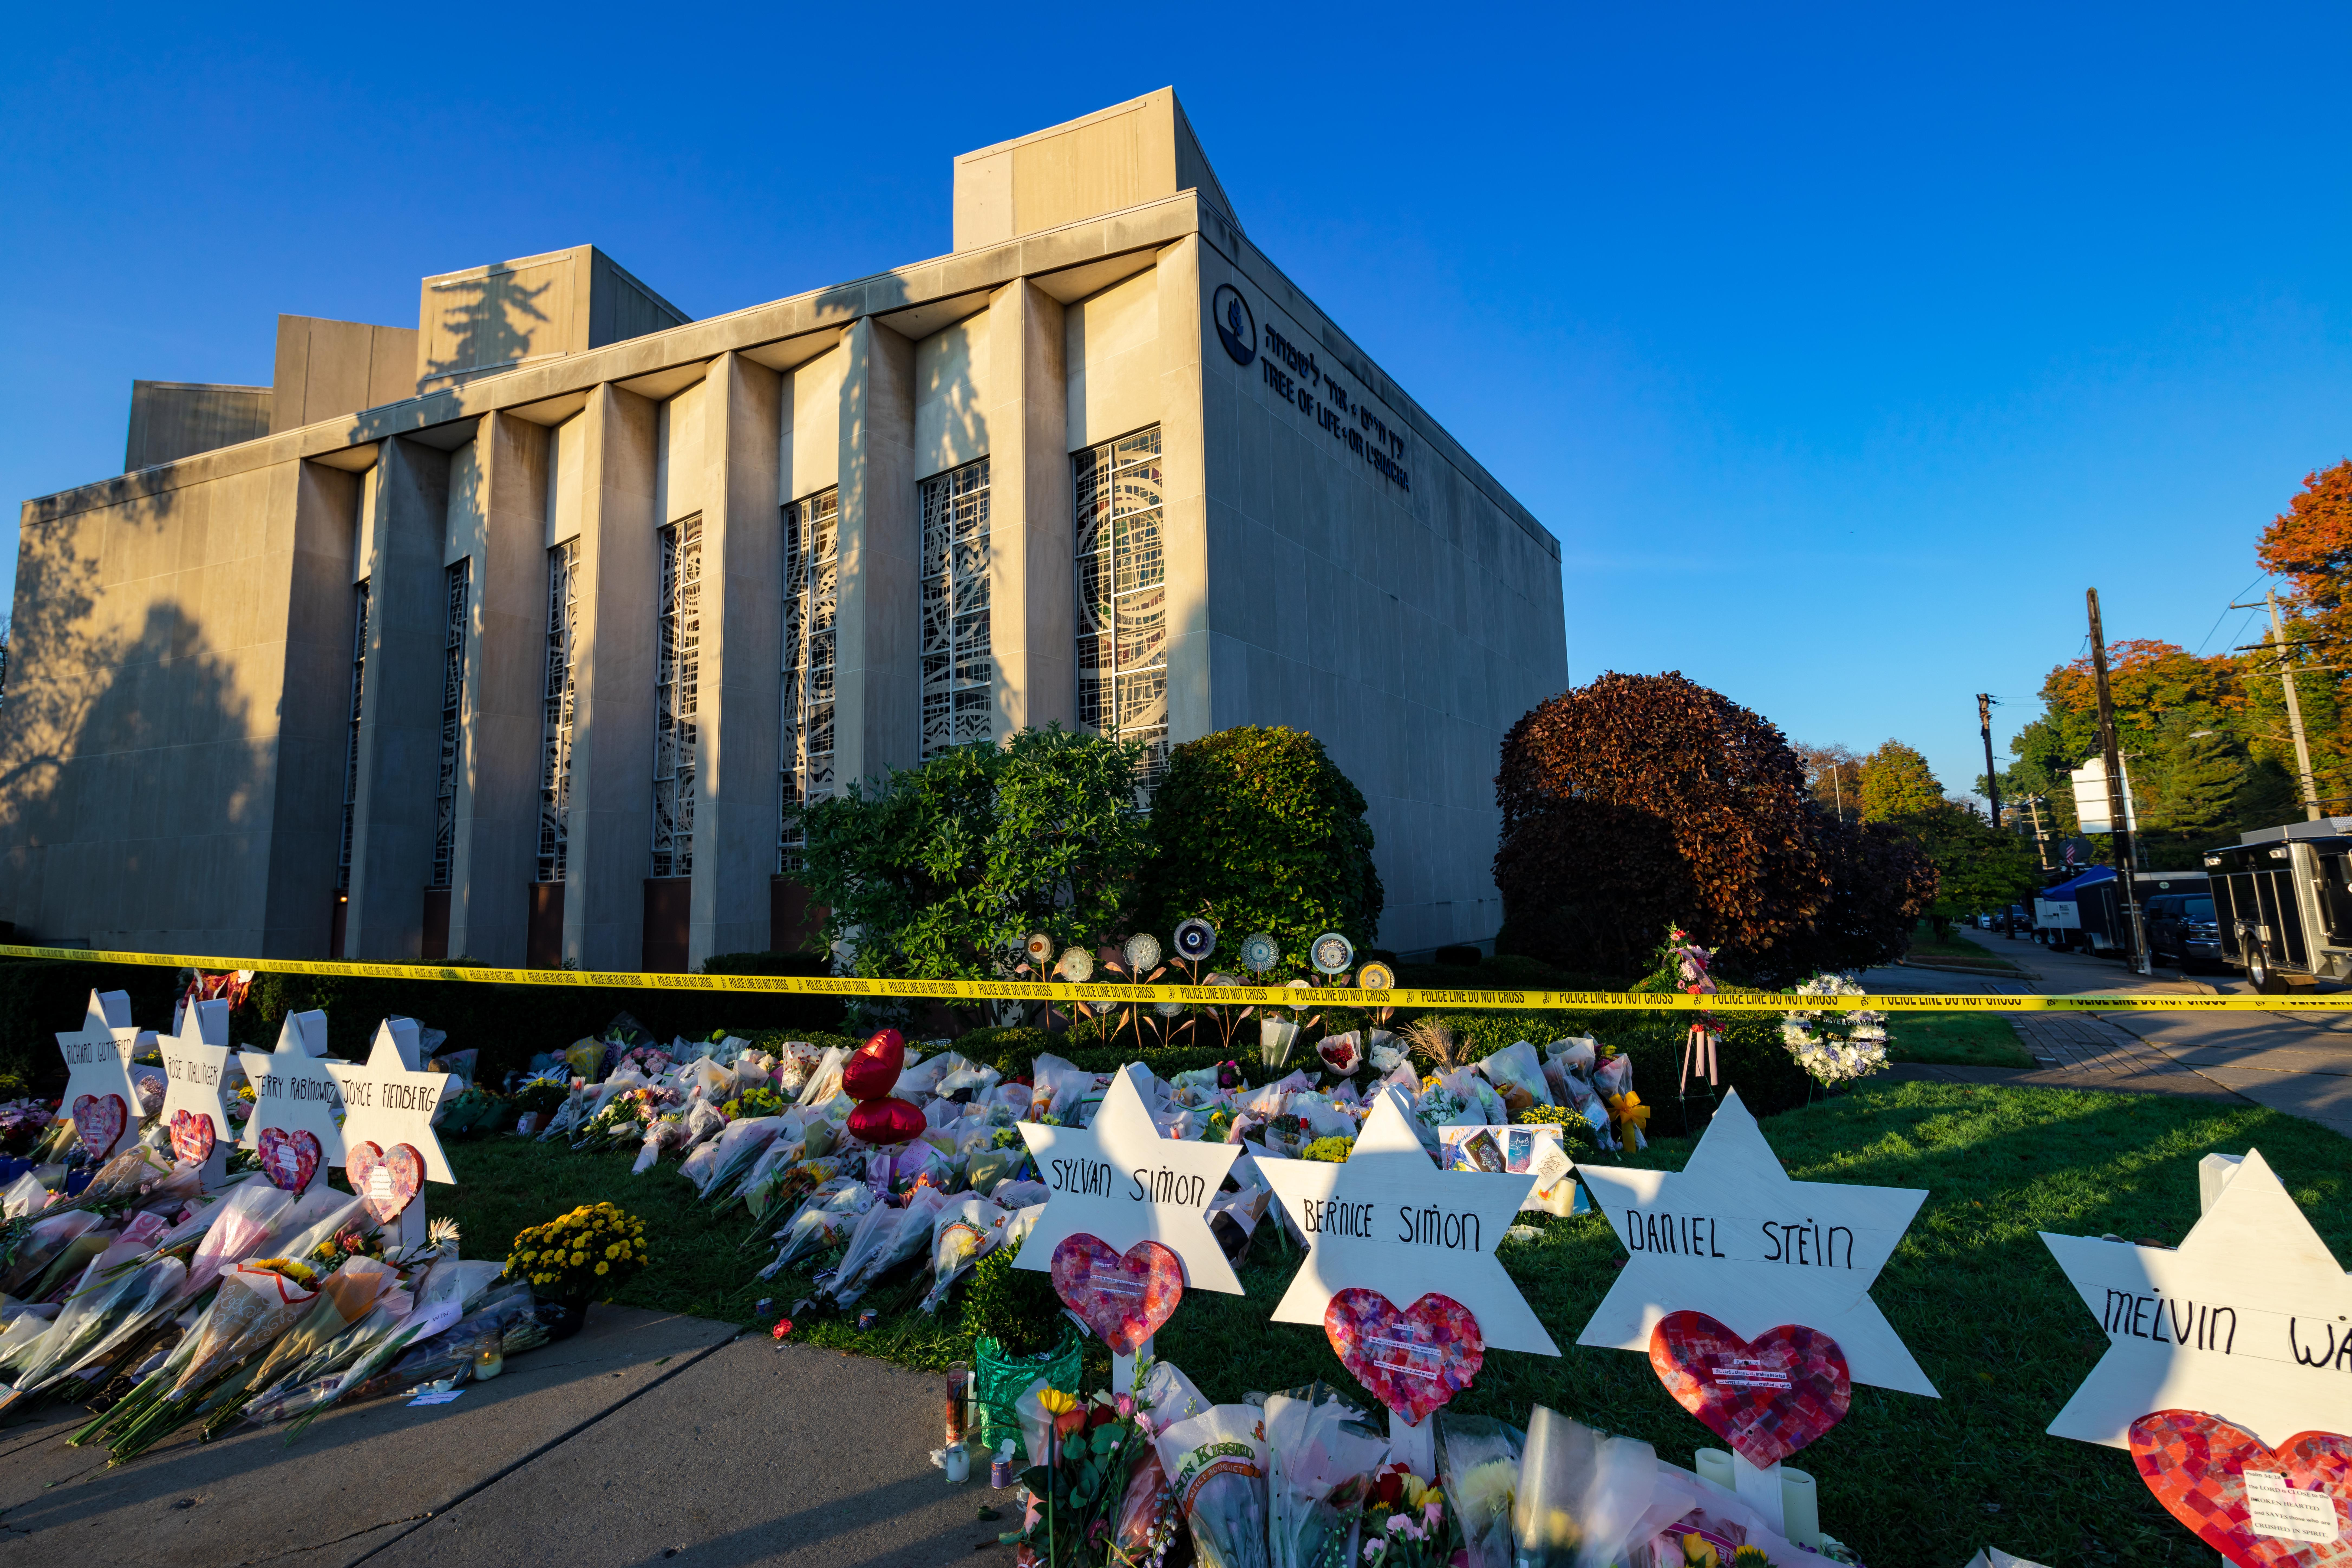 A memorial outside the Tree of Life Congregation Synagogue in Pittsburgh. (Brendt A Petersen / Shutterstock.com